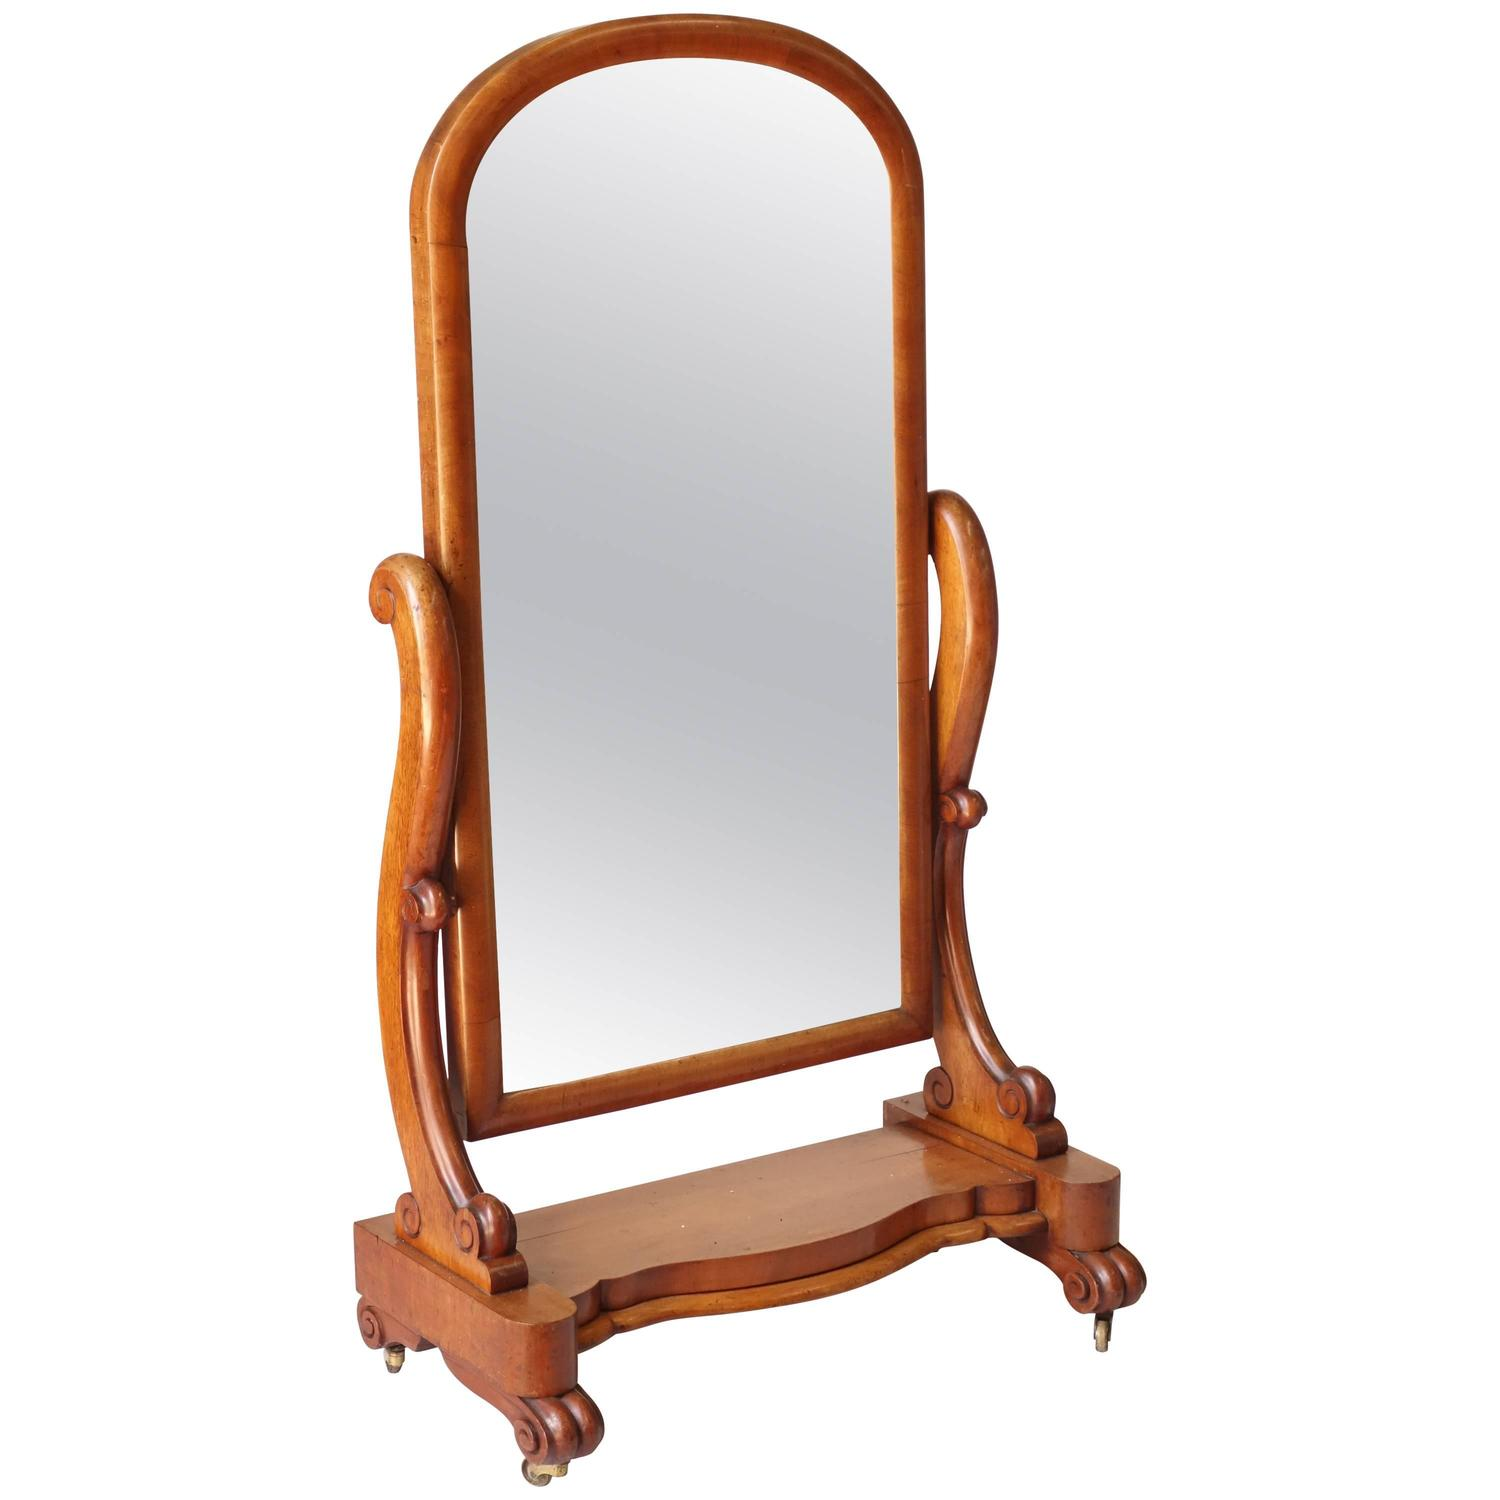 victorian floor standing mirror for sale at 1stdibs